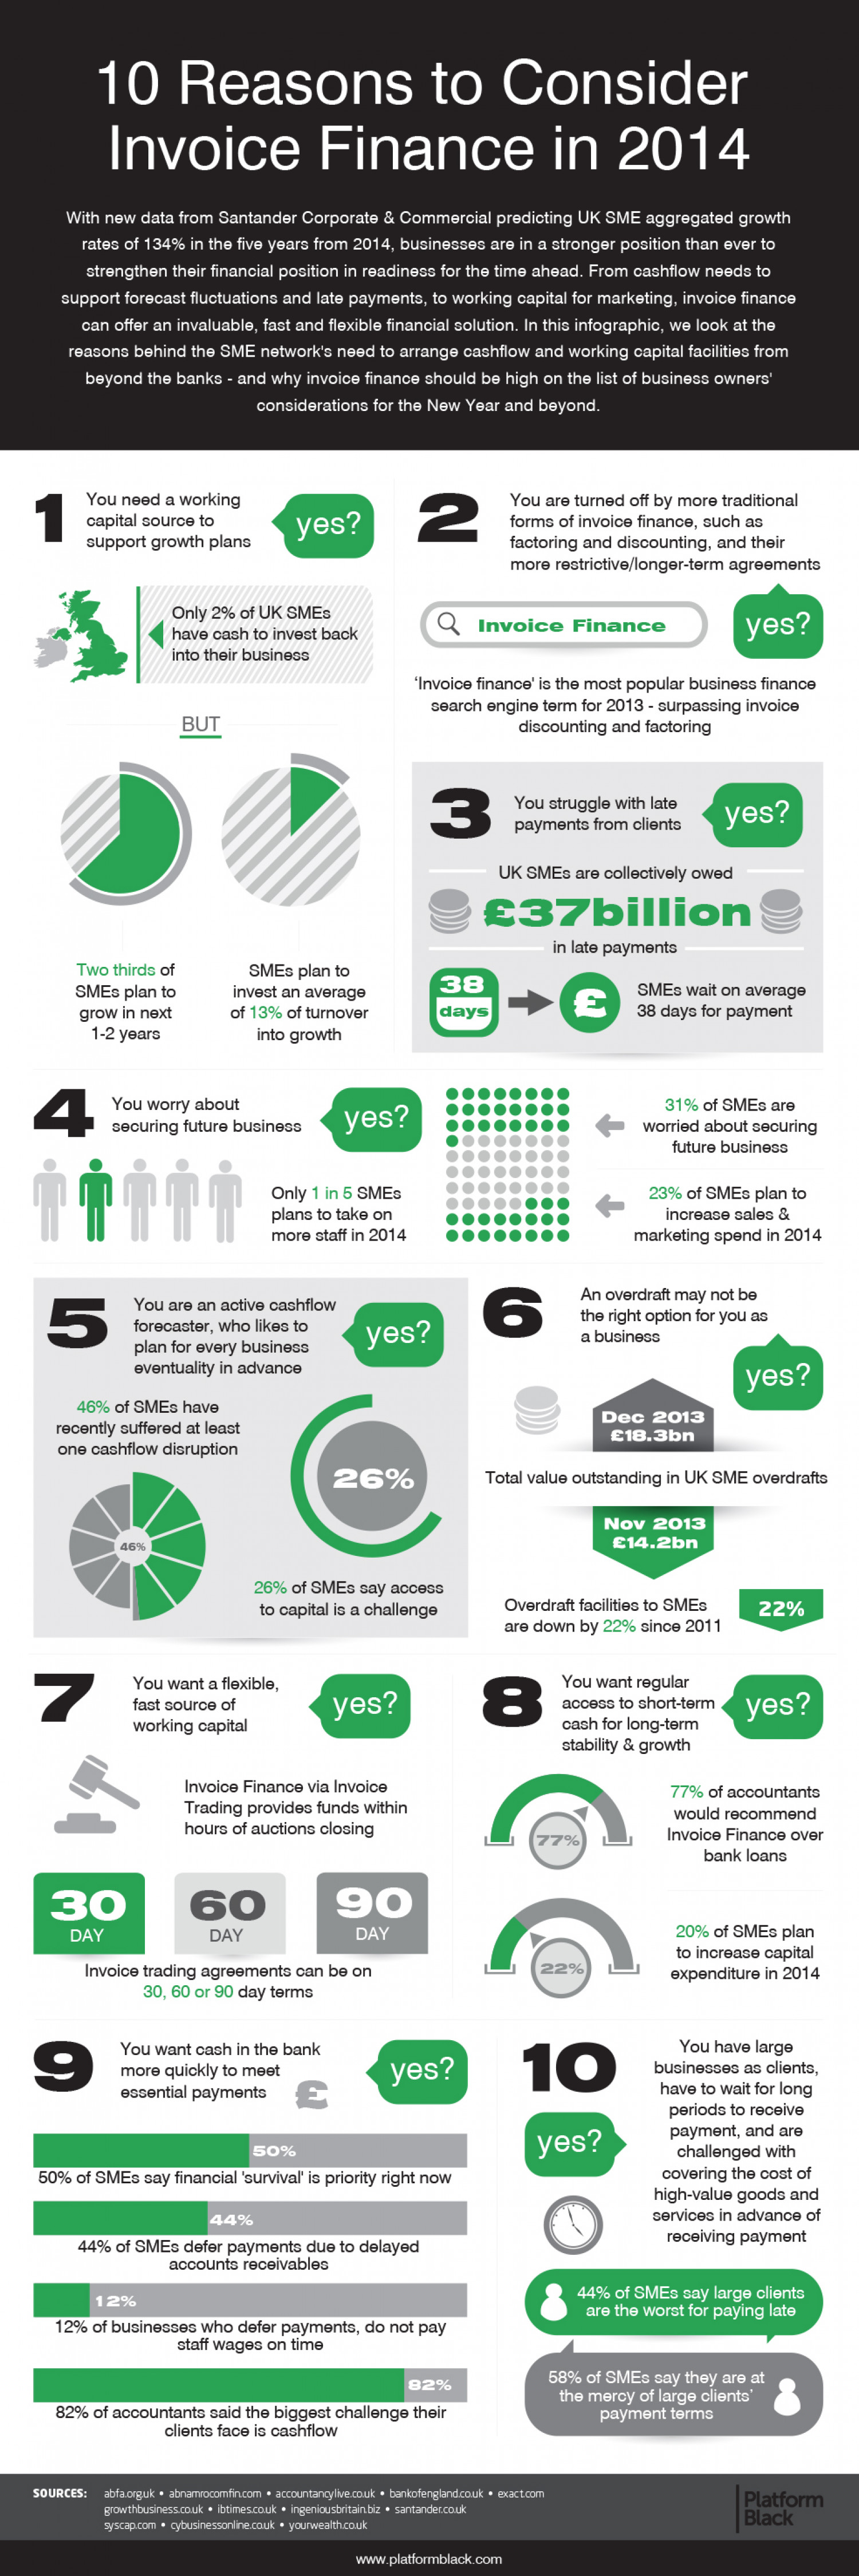 10 Reasons to Consider Invoice Finance in 2014 Infographic